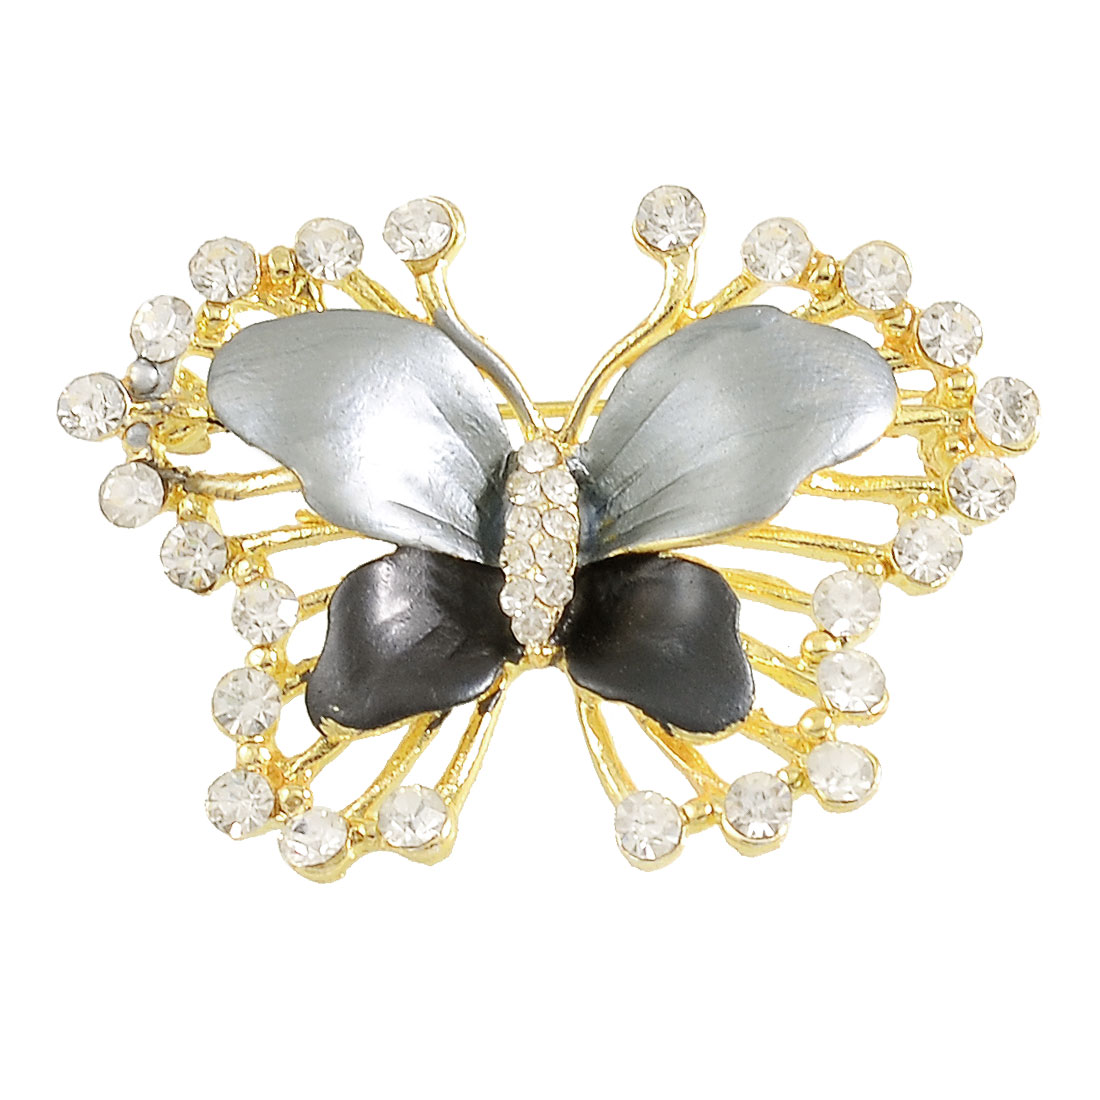 Lady Rhinestone Decor Butterfly Shaped Safety Pin Brooch Breastpin